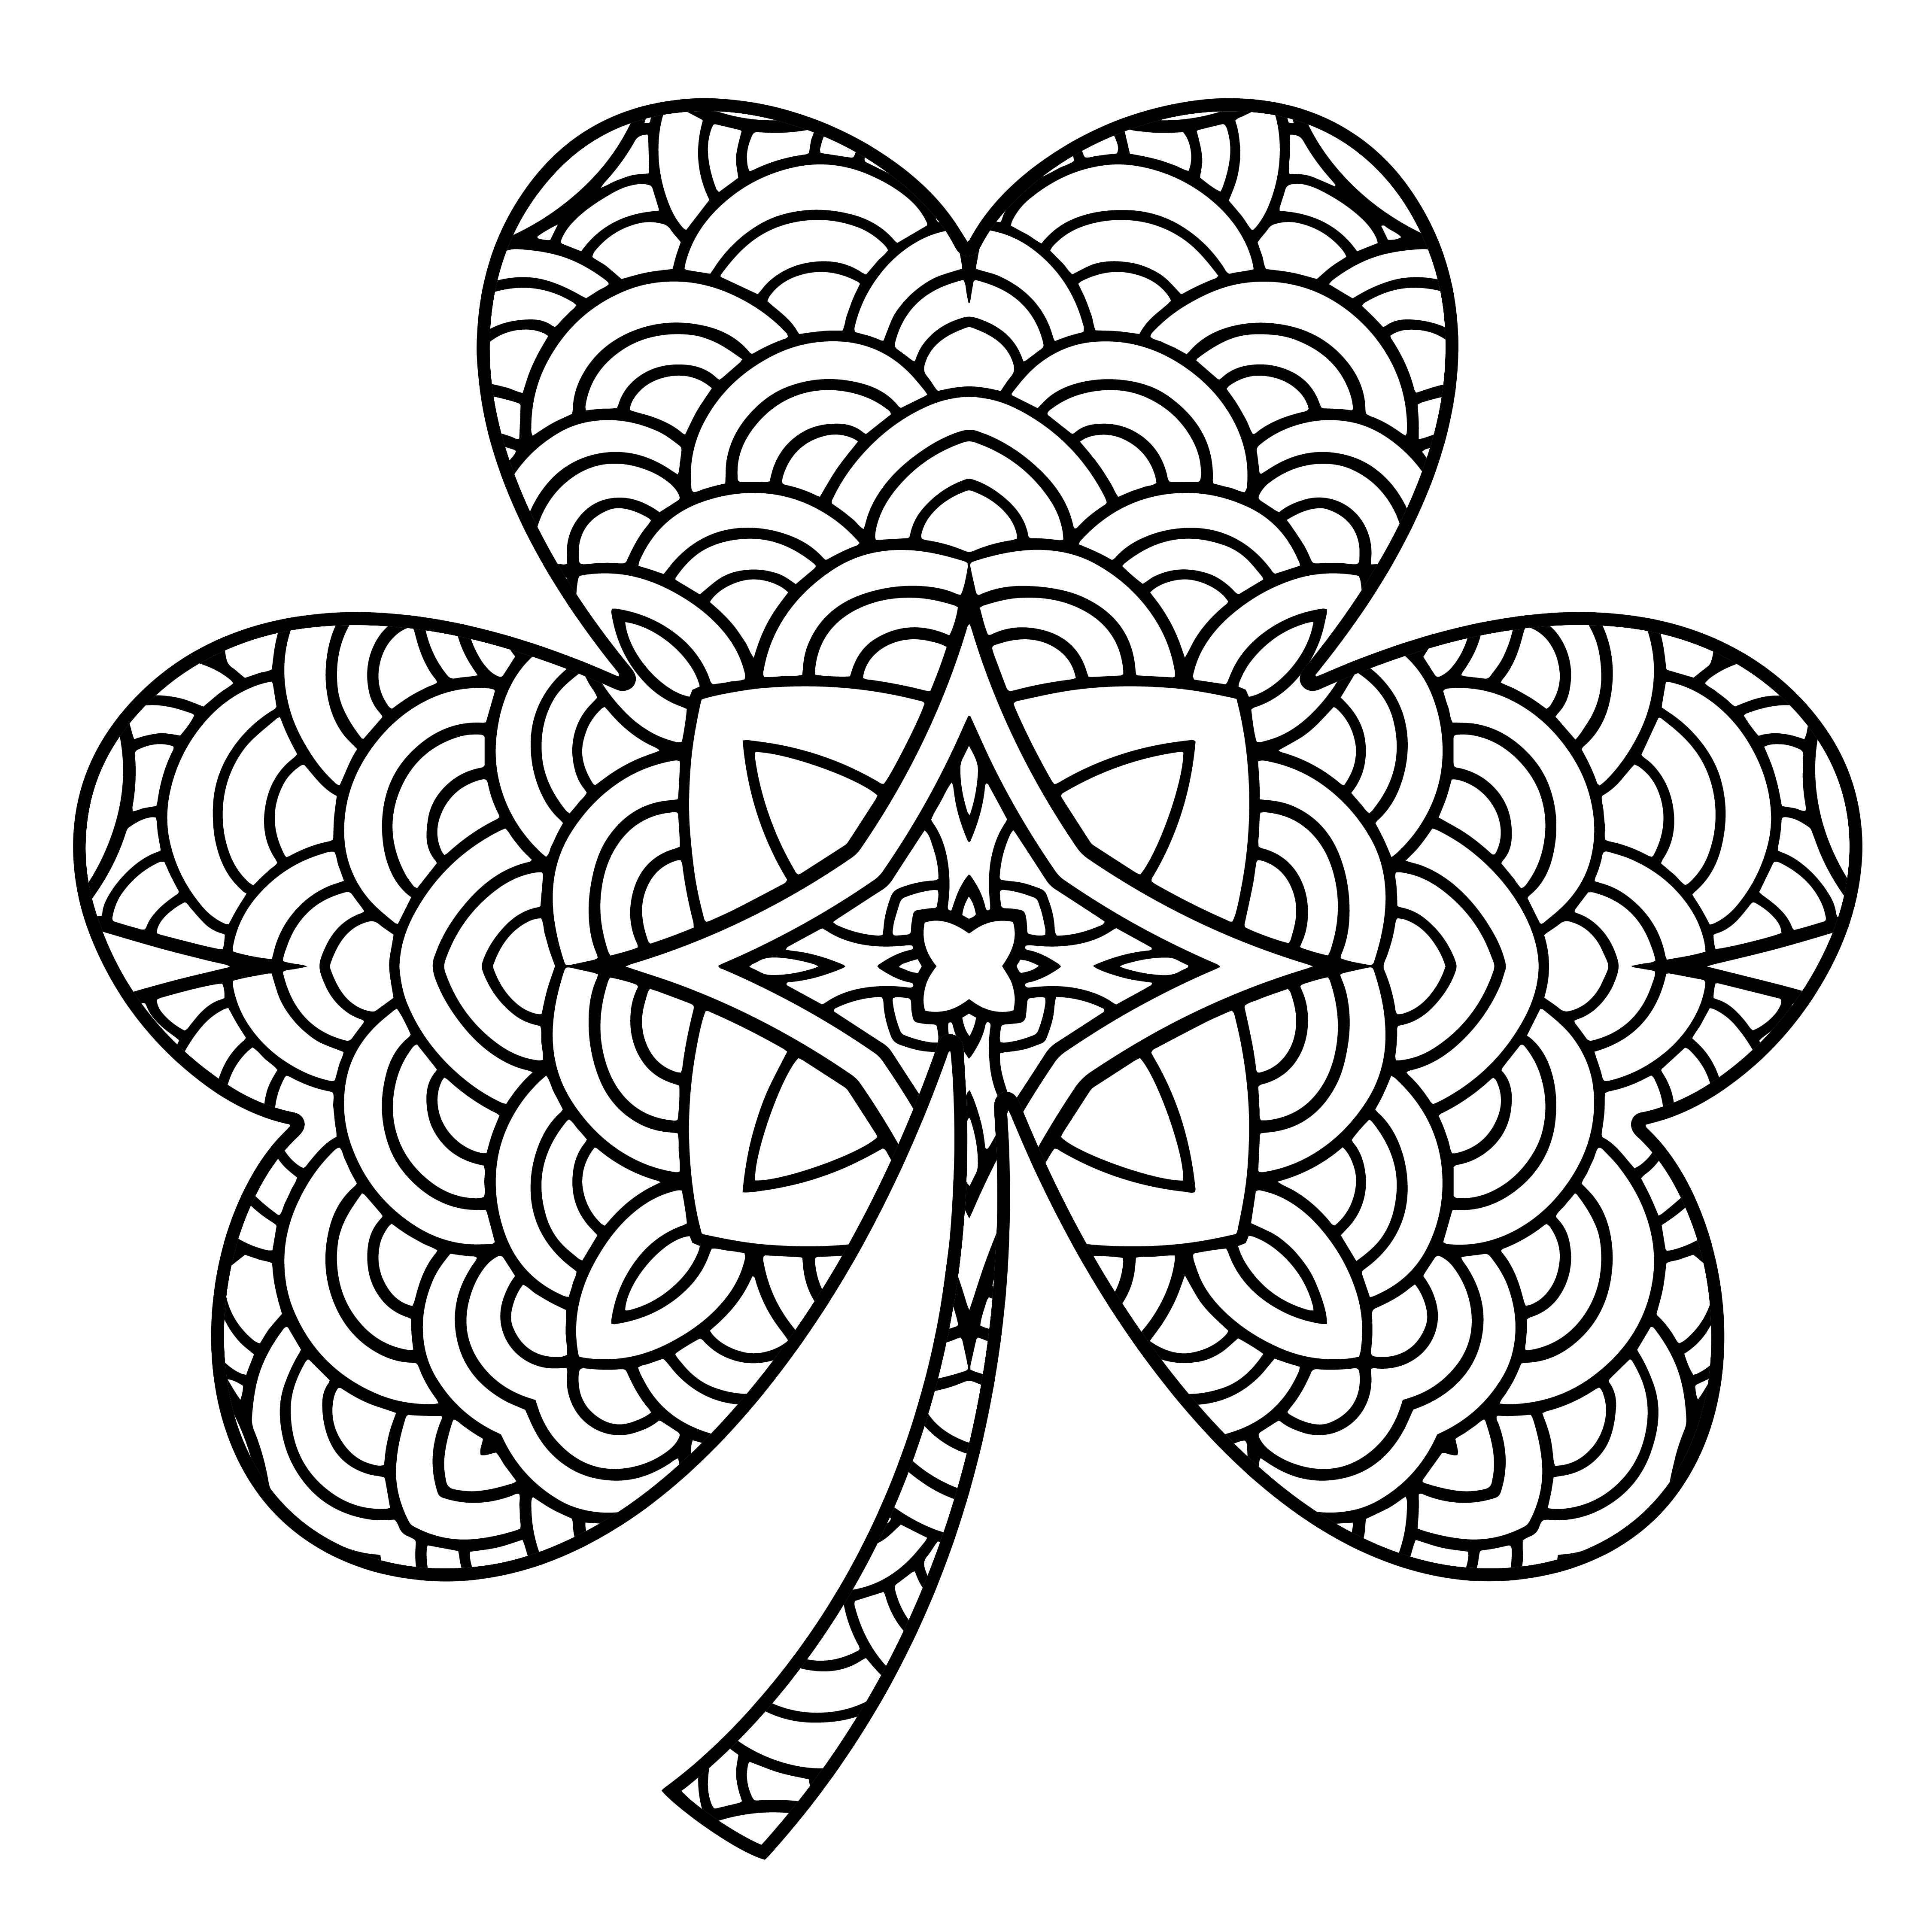 Http Www Allfreeadultcoloringbooks Com Shamrock05 Jpg St Patricks Day Crafts For Kids Blank Coloring Pages Mandala Coloring Pages